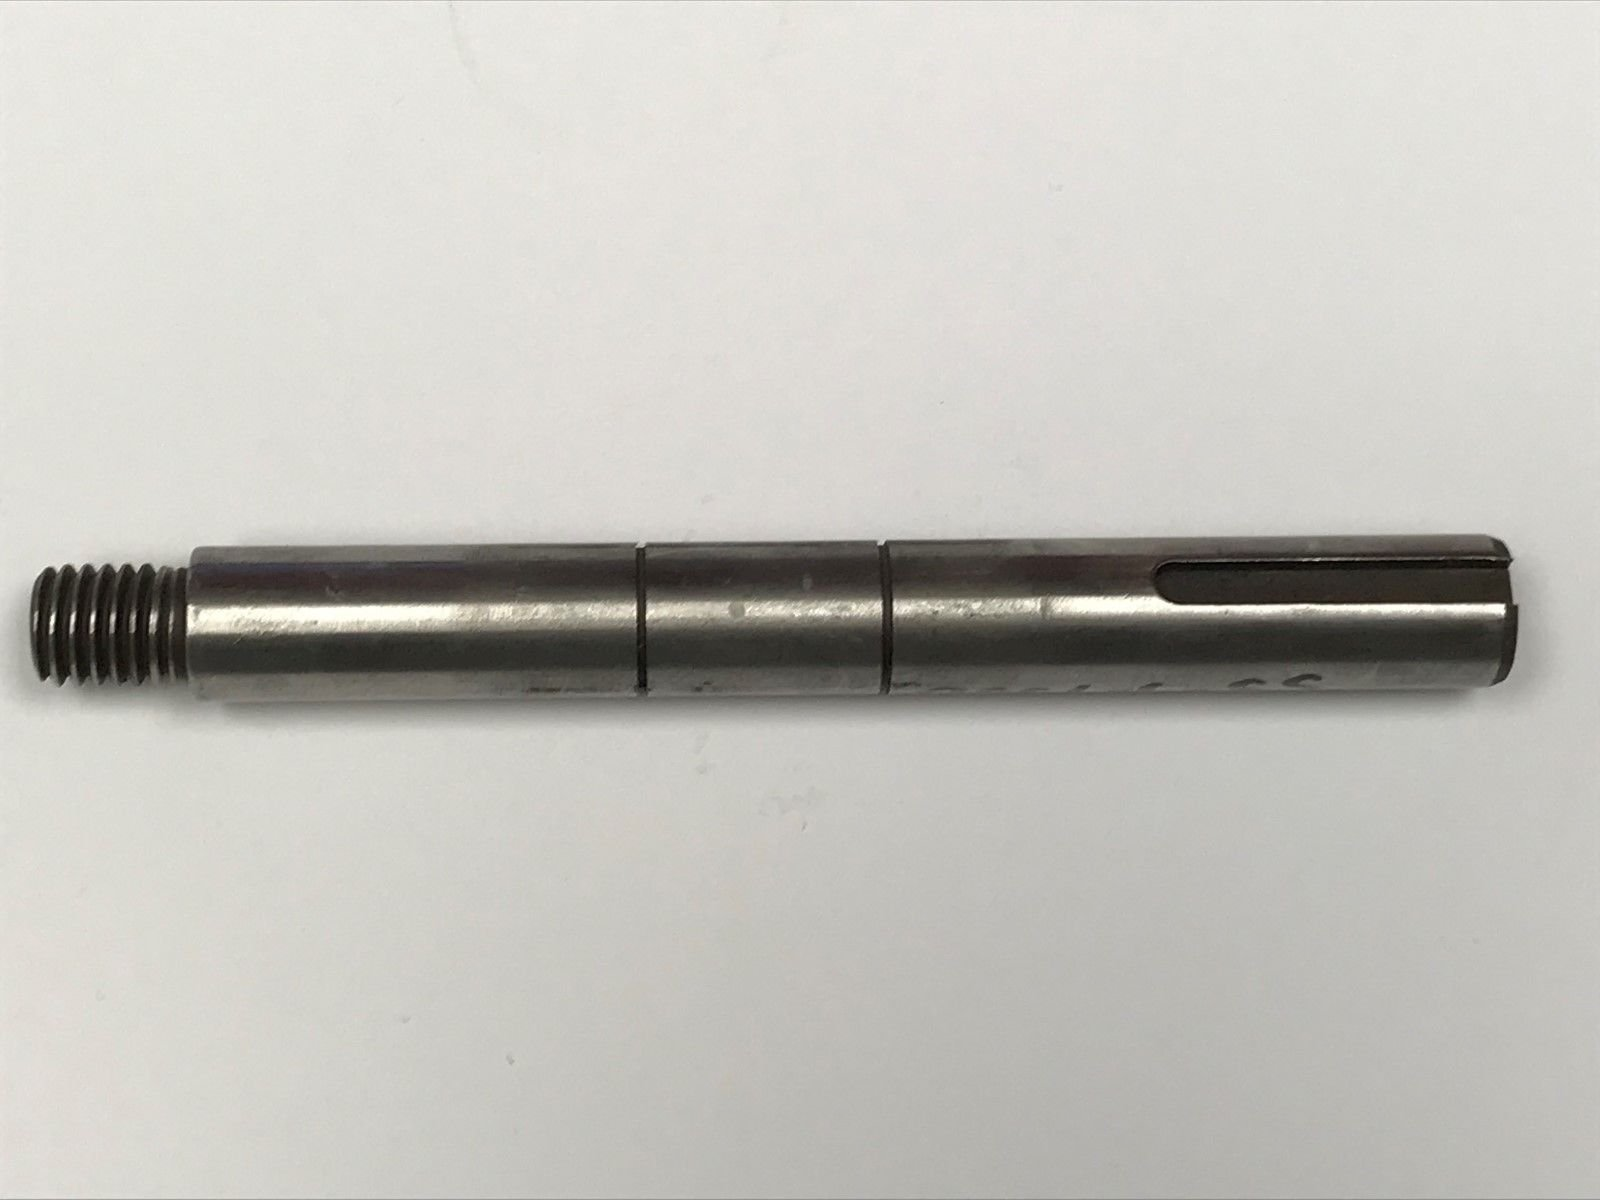 BACL-6-SS SHAFT FOR PTO LIPSEAL, ACE PUMPS